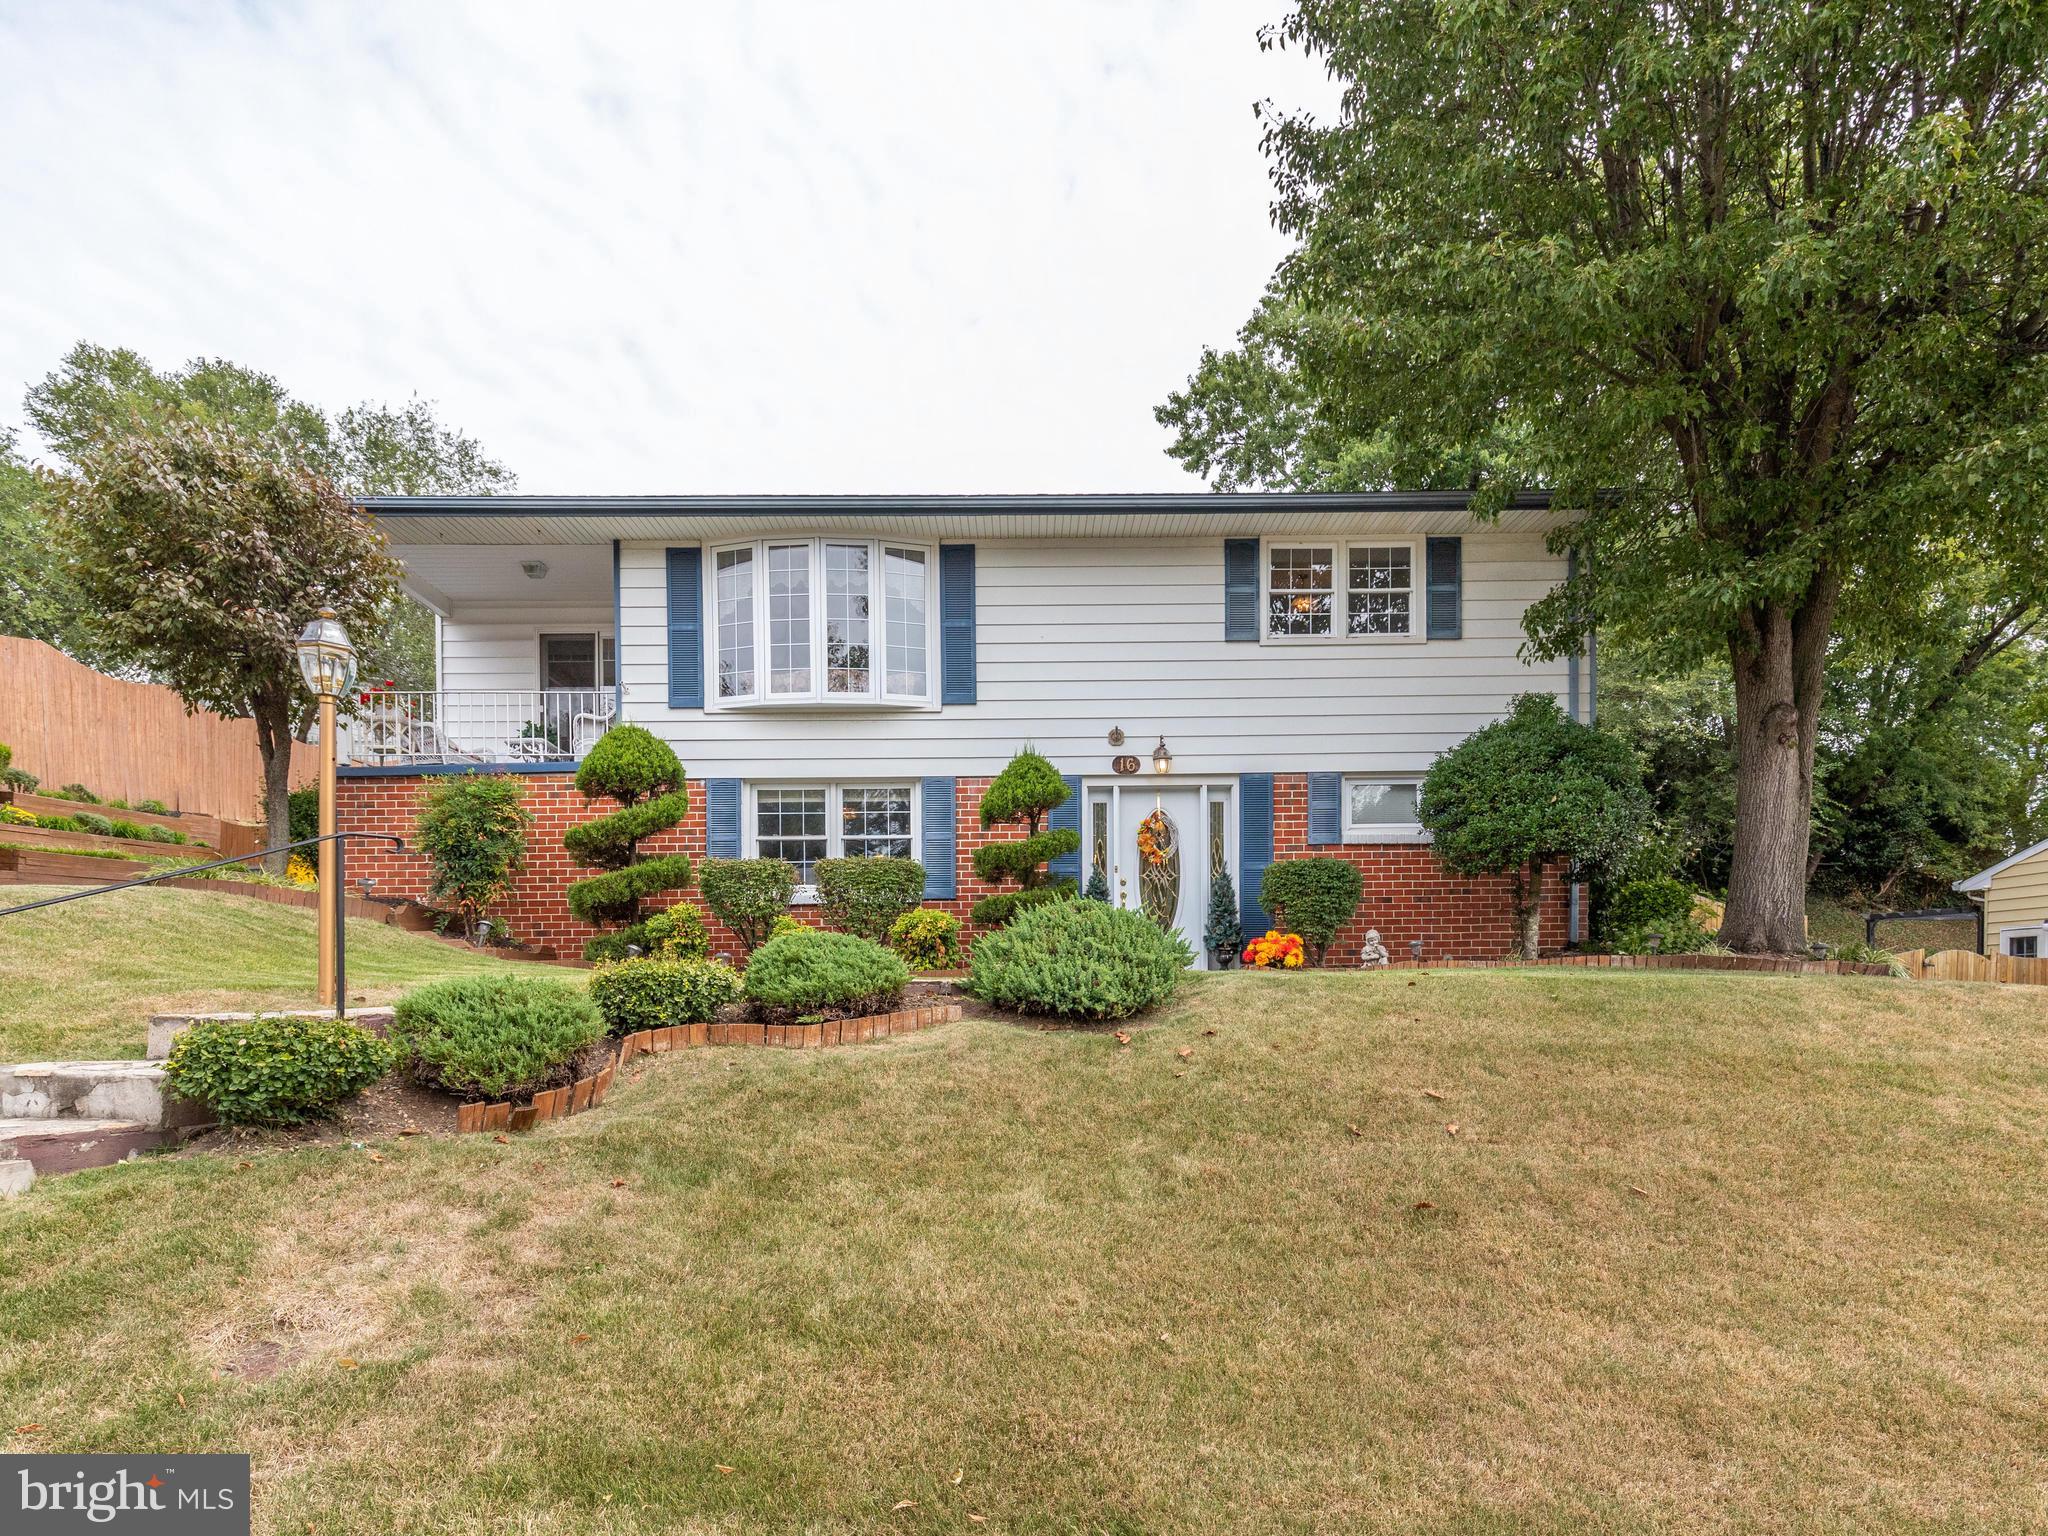 16 CORONET DRIVE, LINTHICUM HEIGHTS, MD 21090